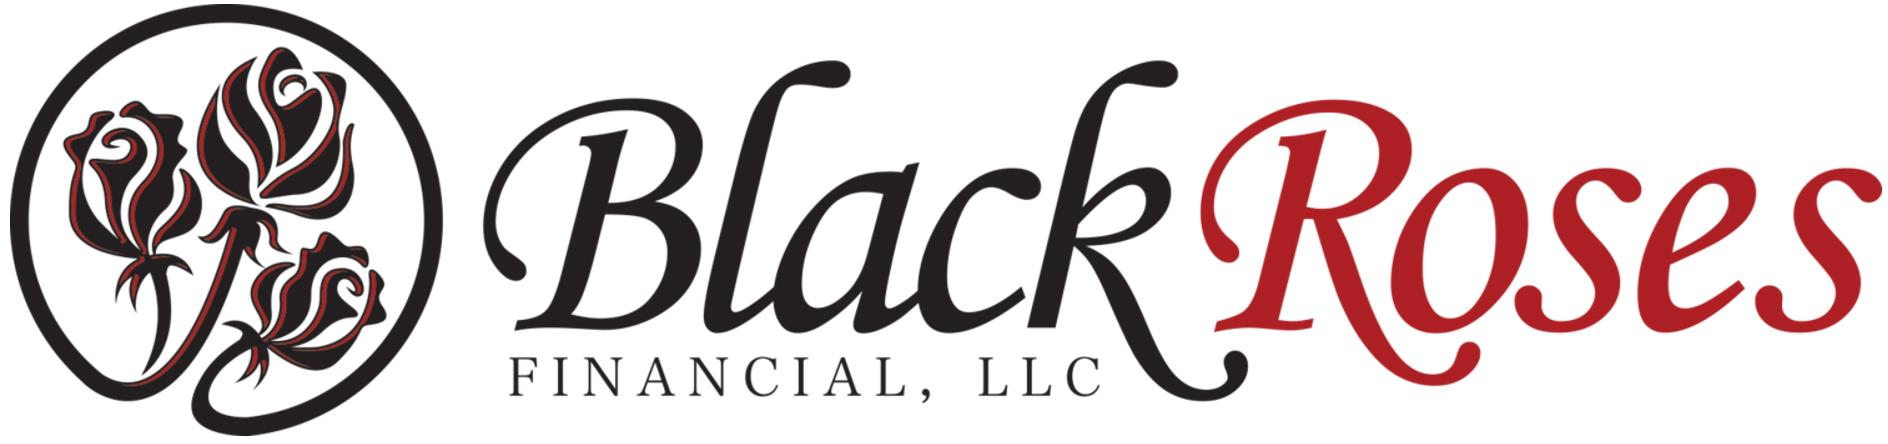 Black-Roses-Financial-Logo.jpg